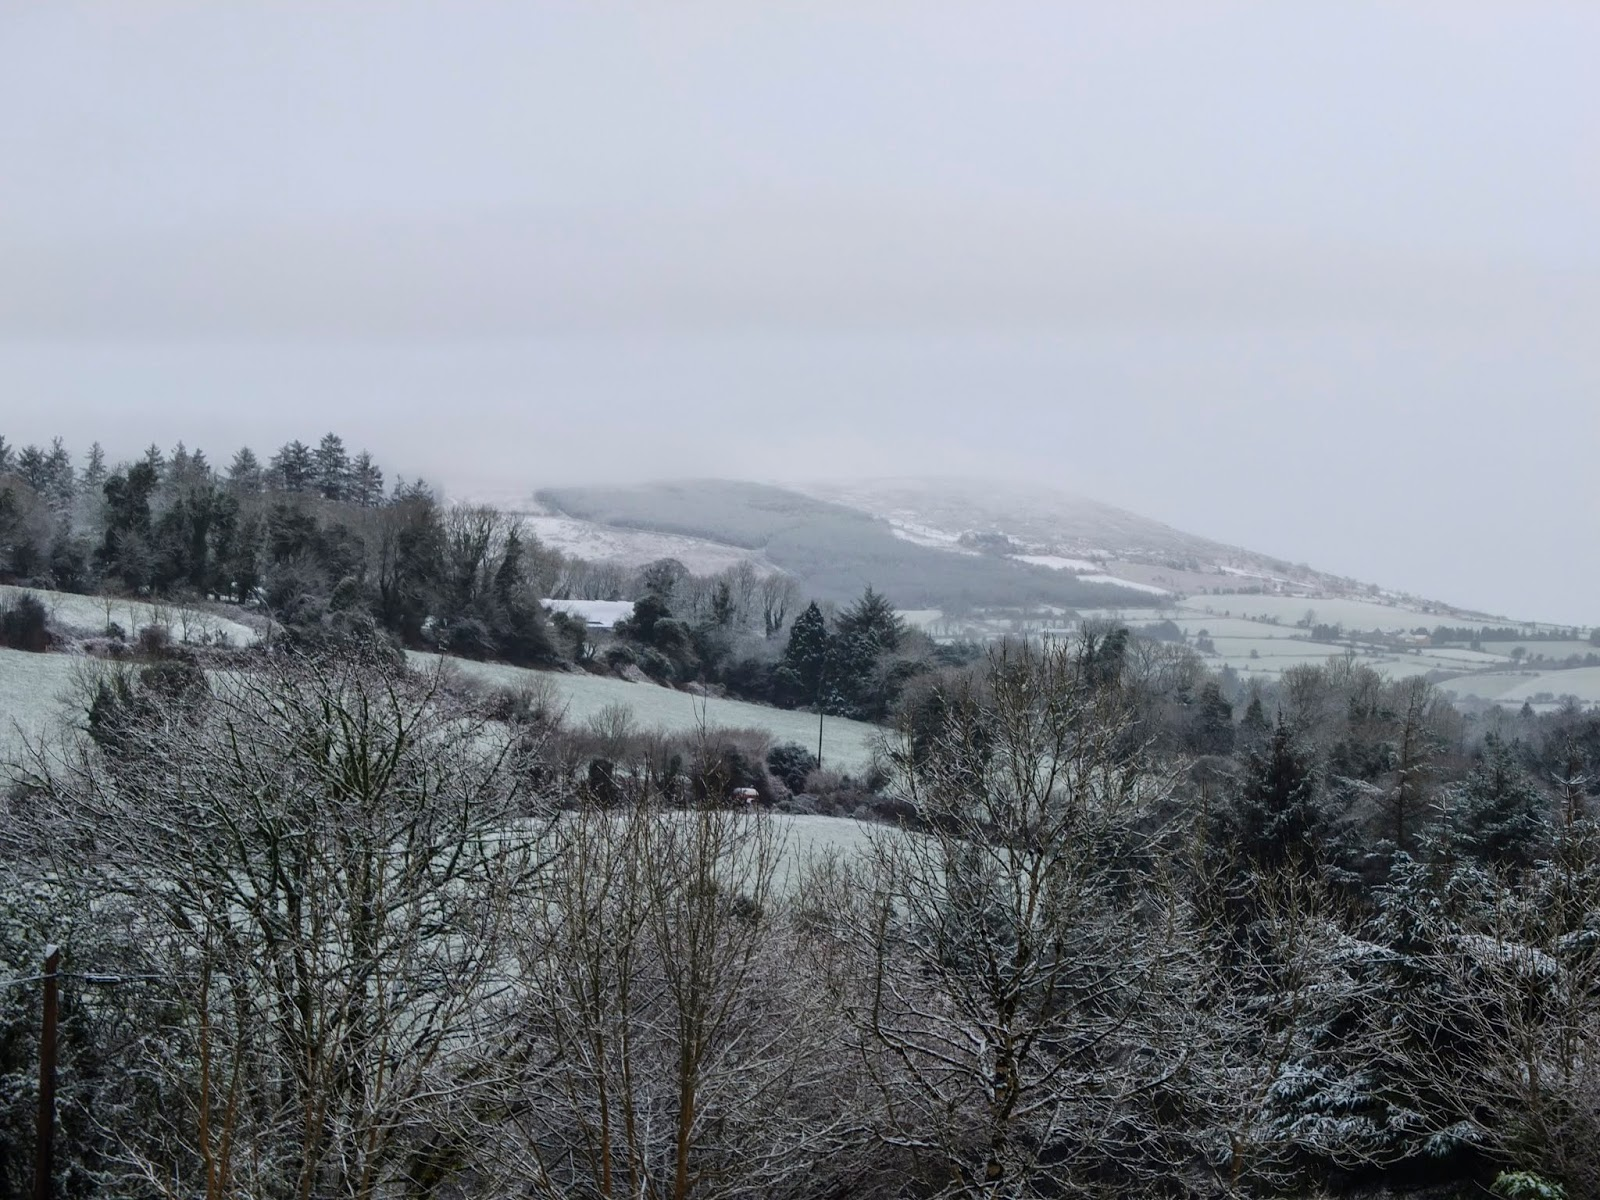 Snow capped Mount Hilary in North Cork captured from the Boggeragh Mountains.